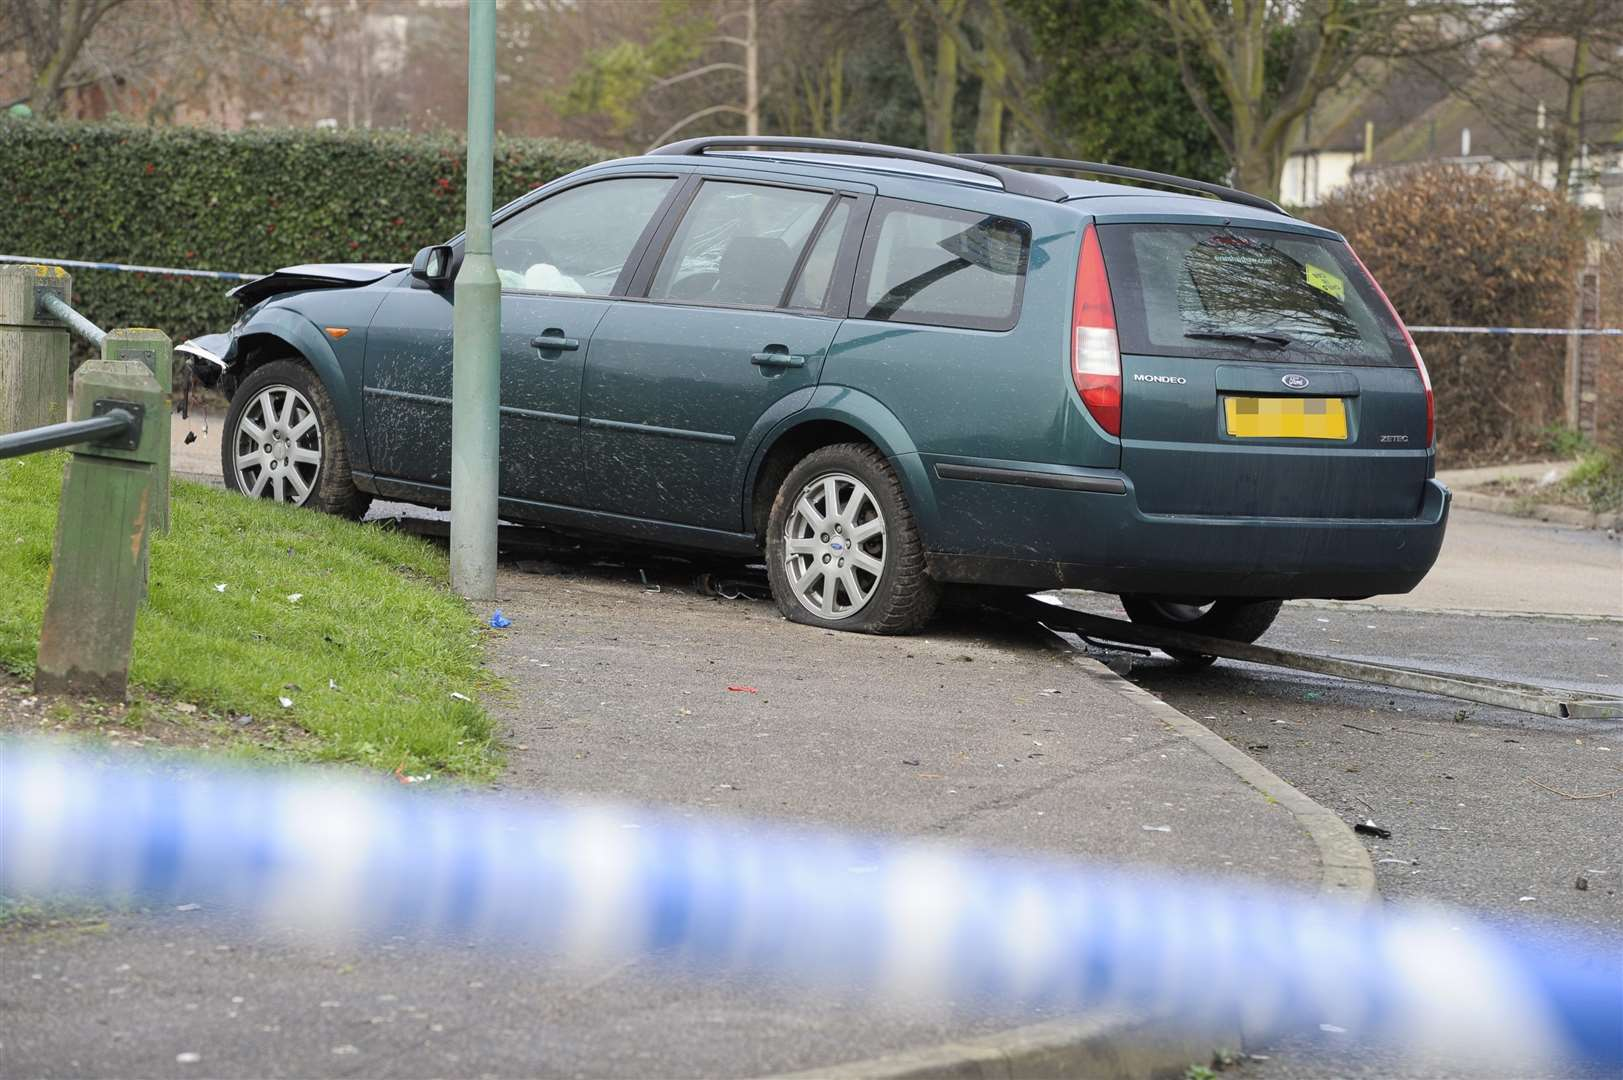 A police cordon around the car in Castlemaine Avenue. Picture: Andy Payton